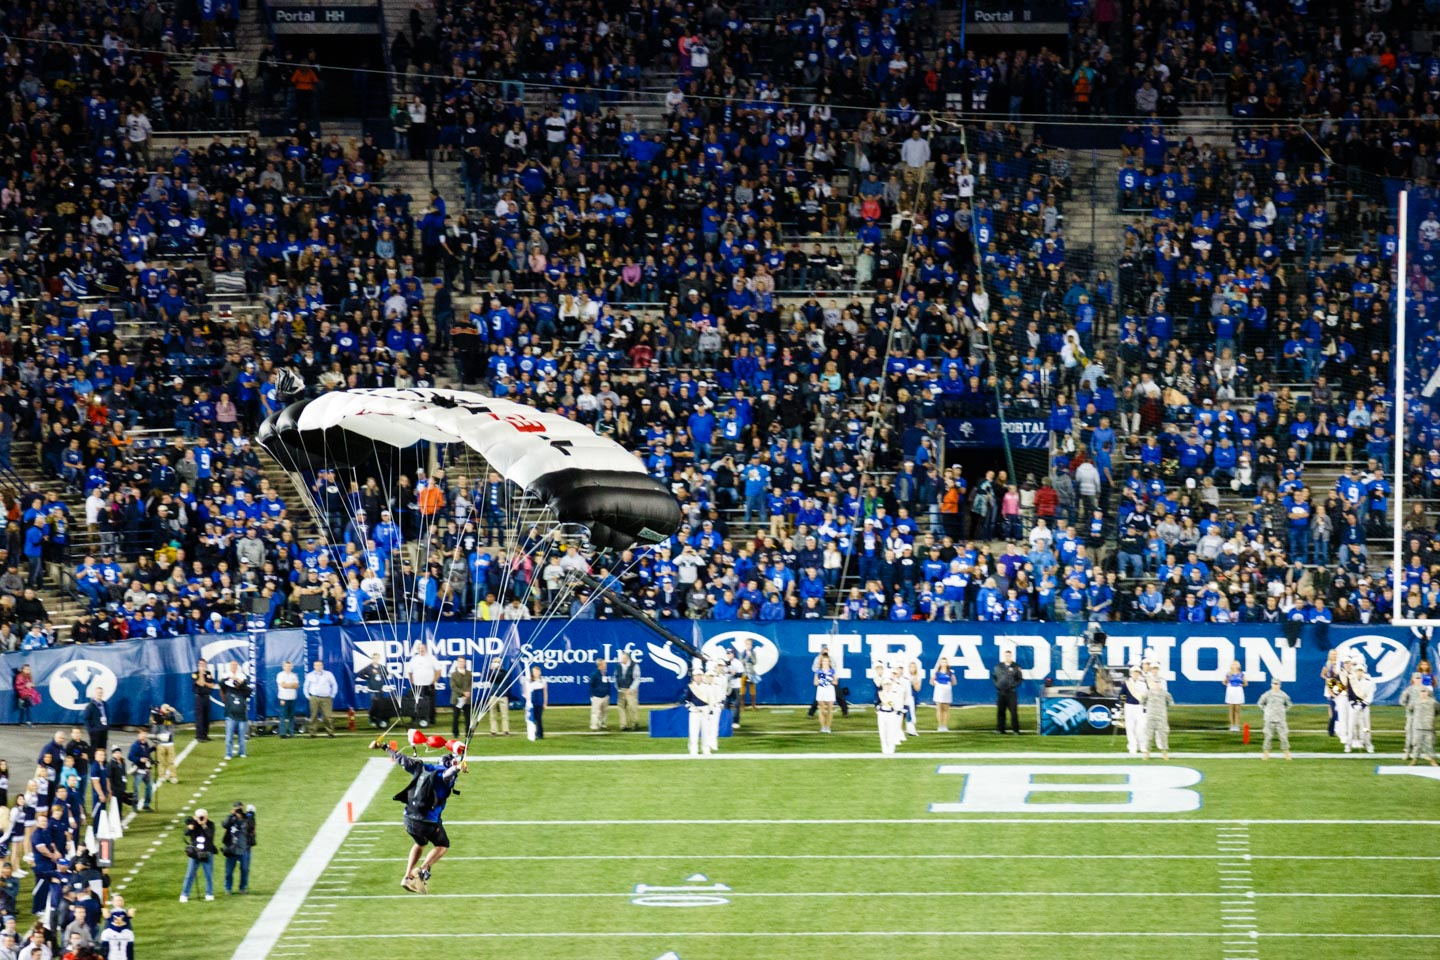 Parachuter lands in Lavell Edwards Stadium